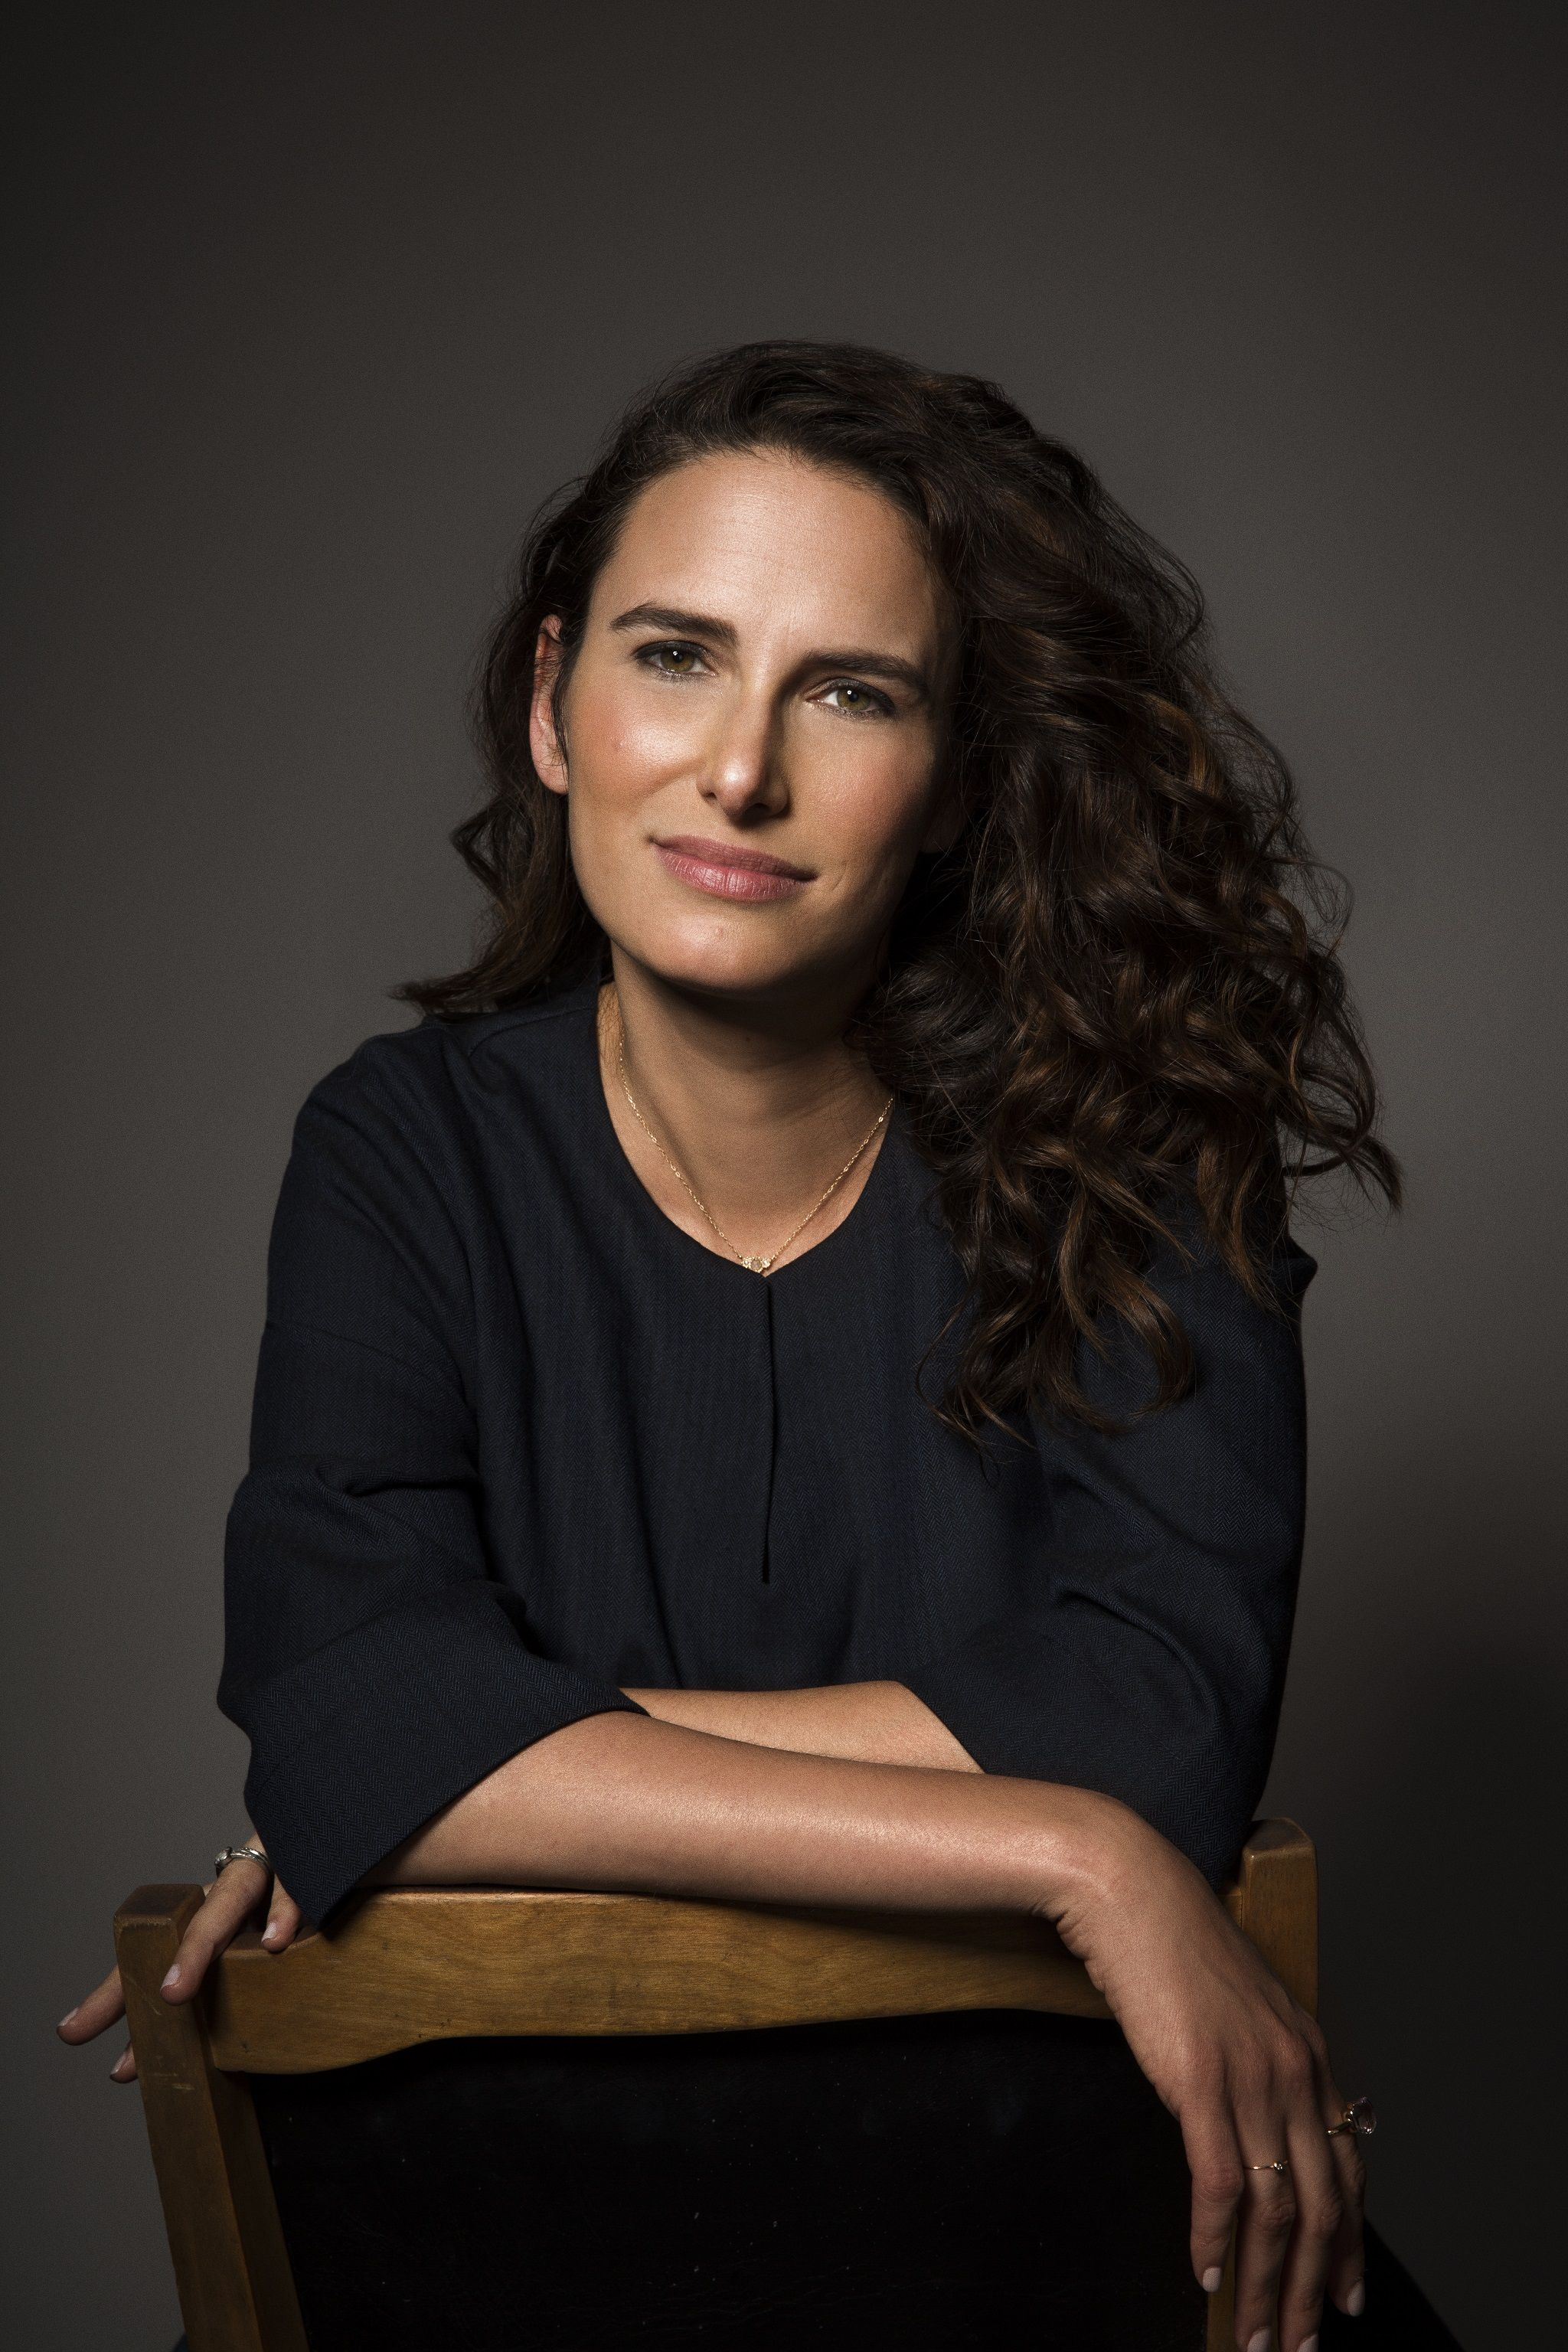 Jessi Klein nude photos 2019